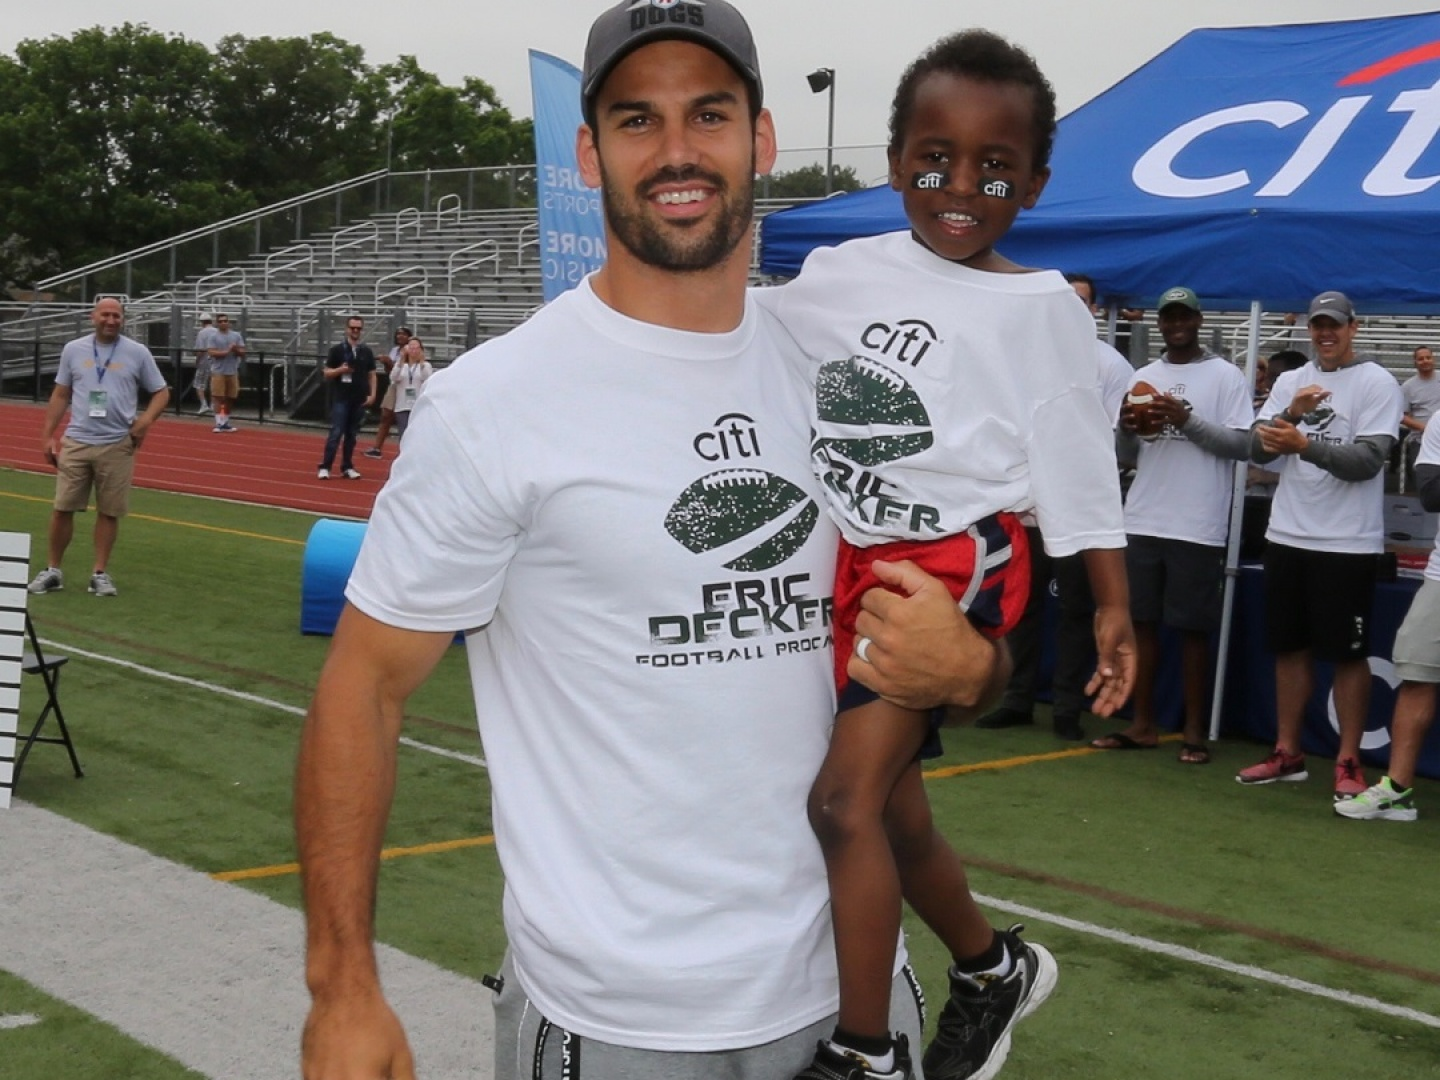 Citi - ProCamps Partnership Thumbnail